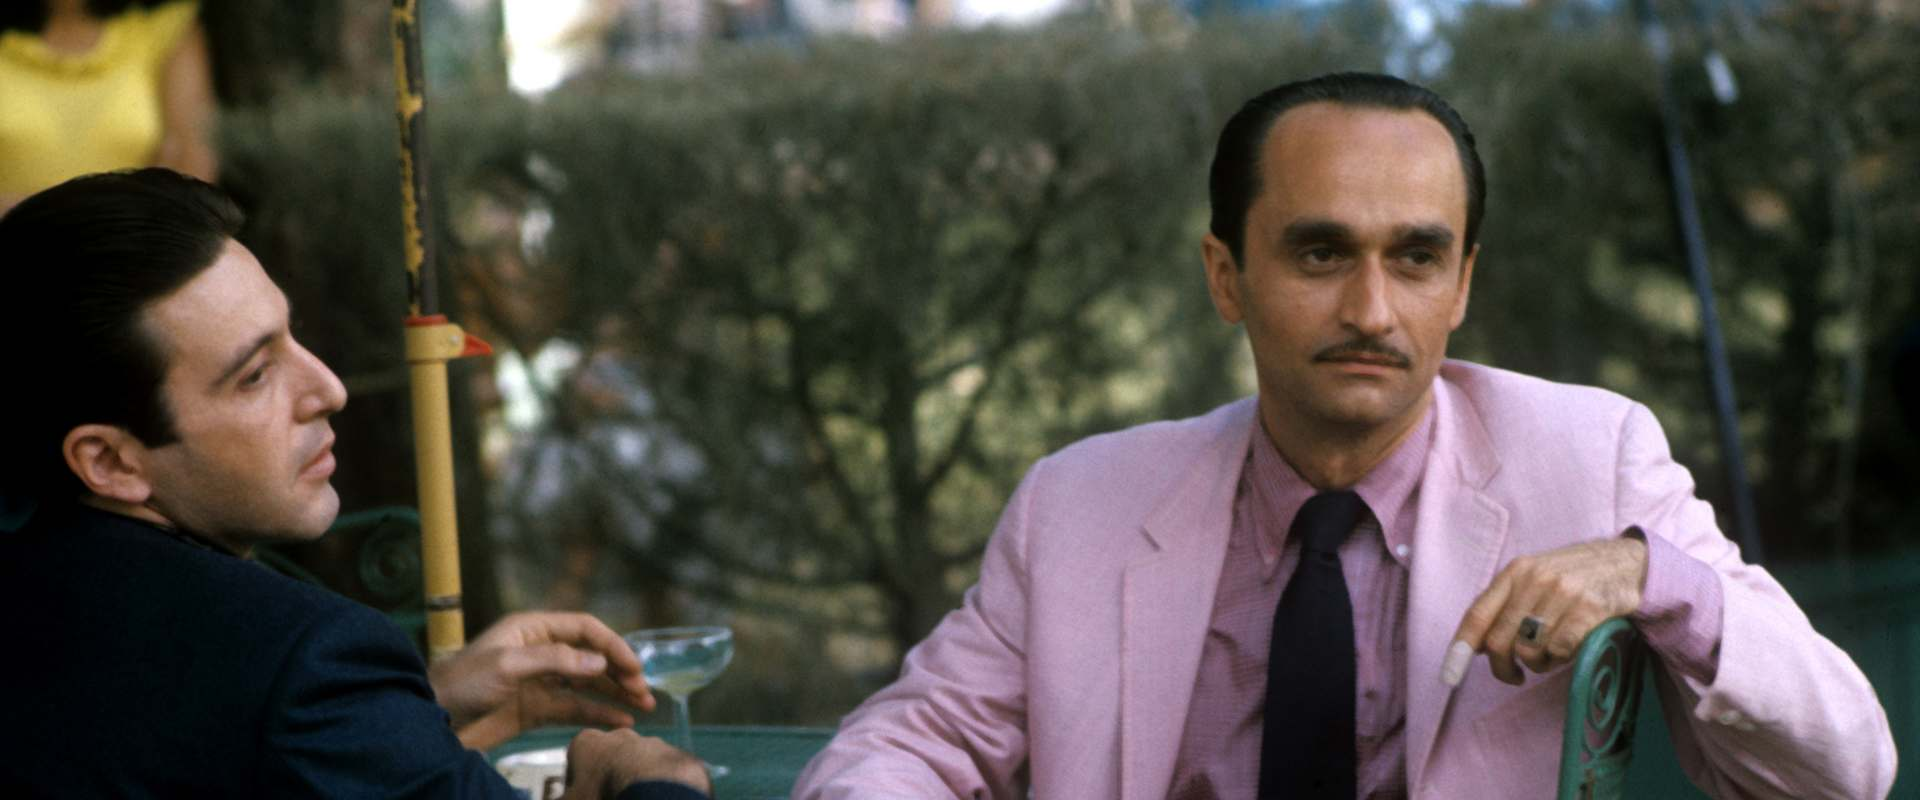 I Knew It Was You: Rediscovering John Cazale background 1